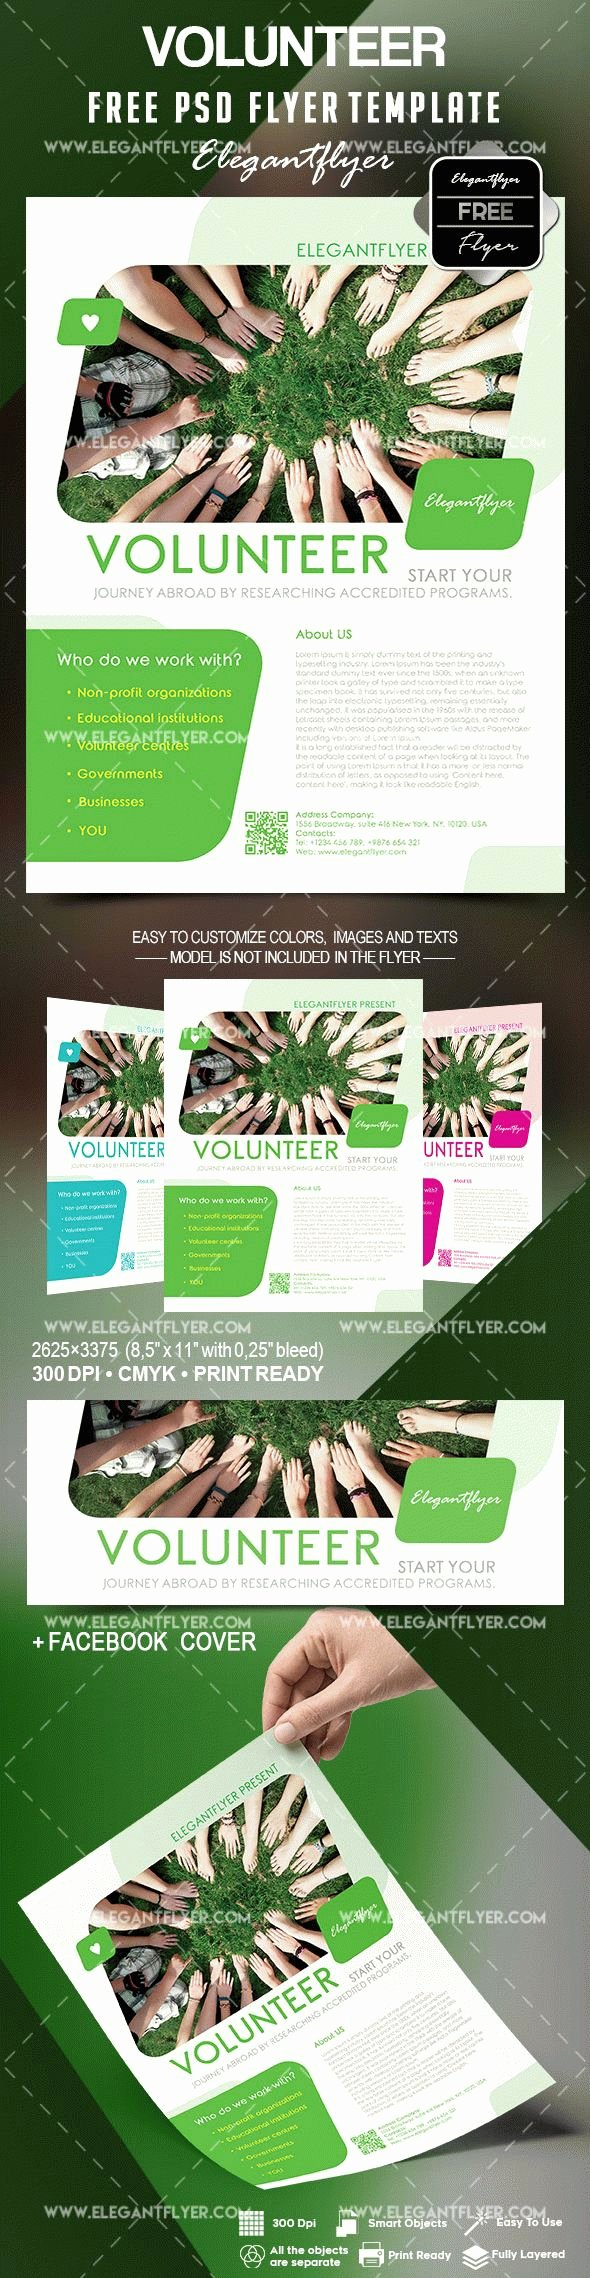 Volunteer Flyer Template Free Elegant Volunteer Flyer Template Free – by Elegantflyer